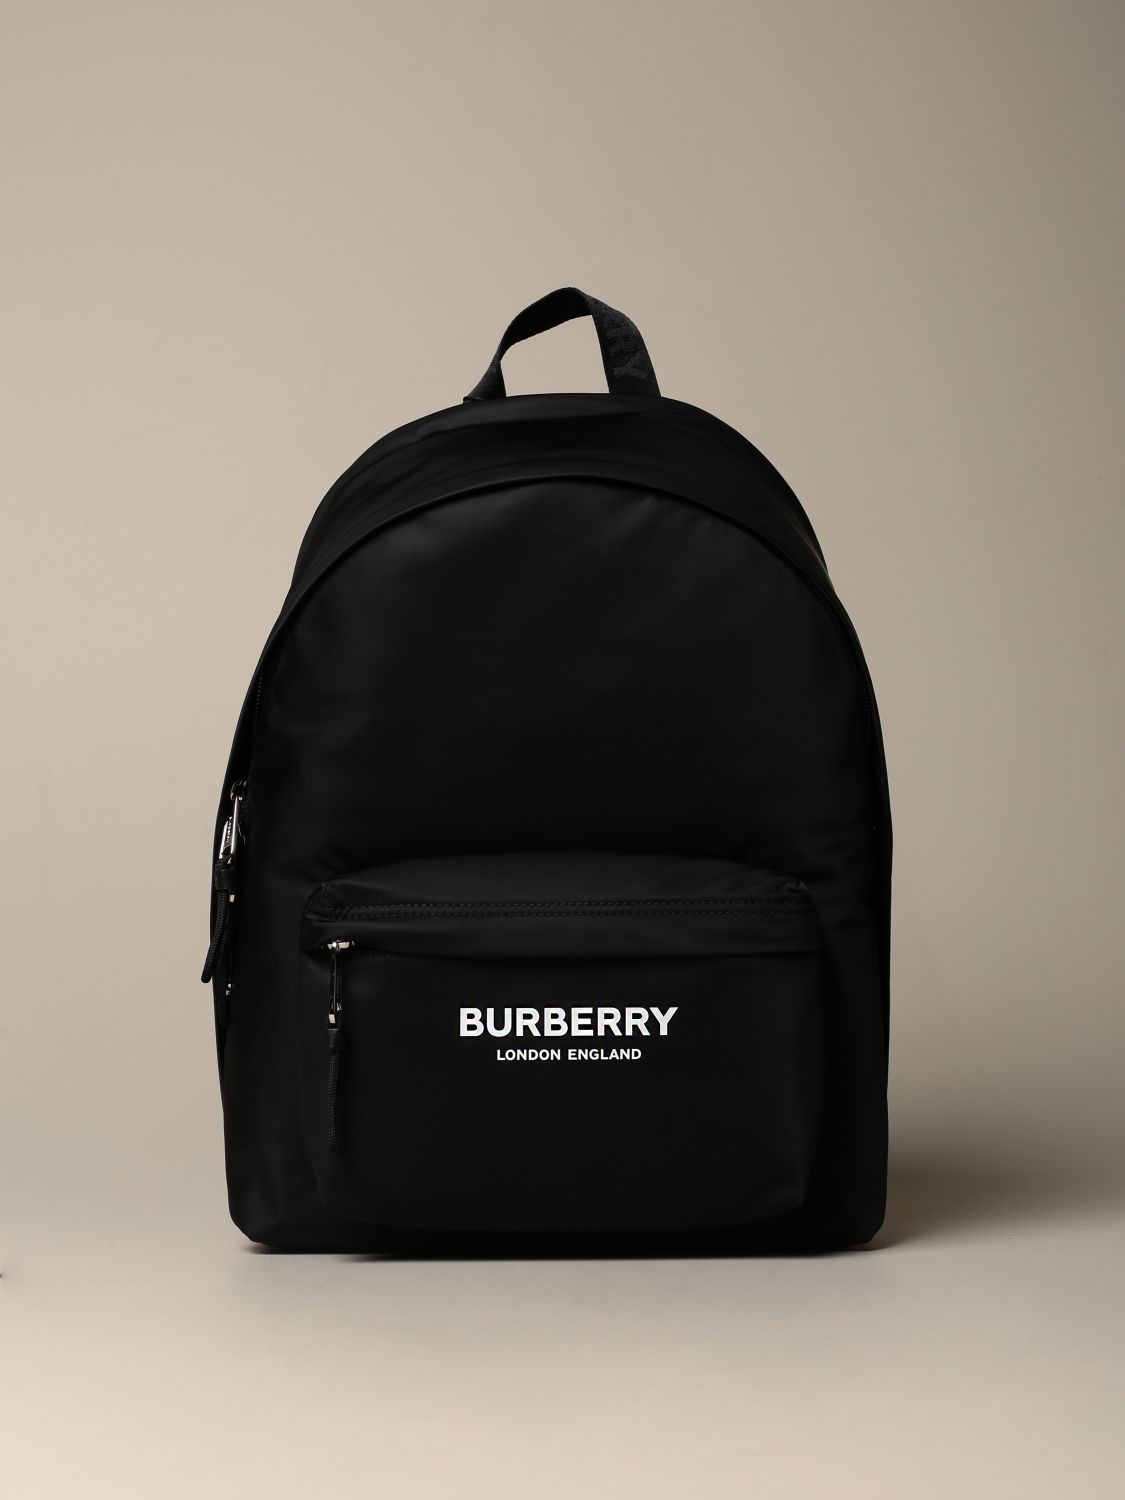 Backpack Burberry: Burberry eco-nylon backpack with London England logo black 1